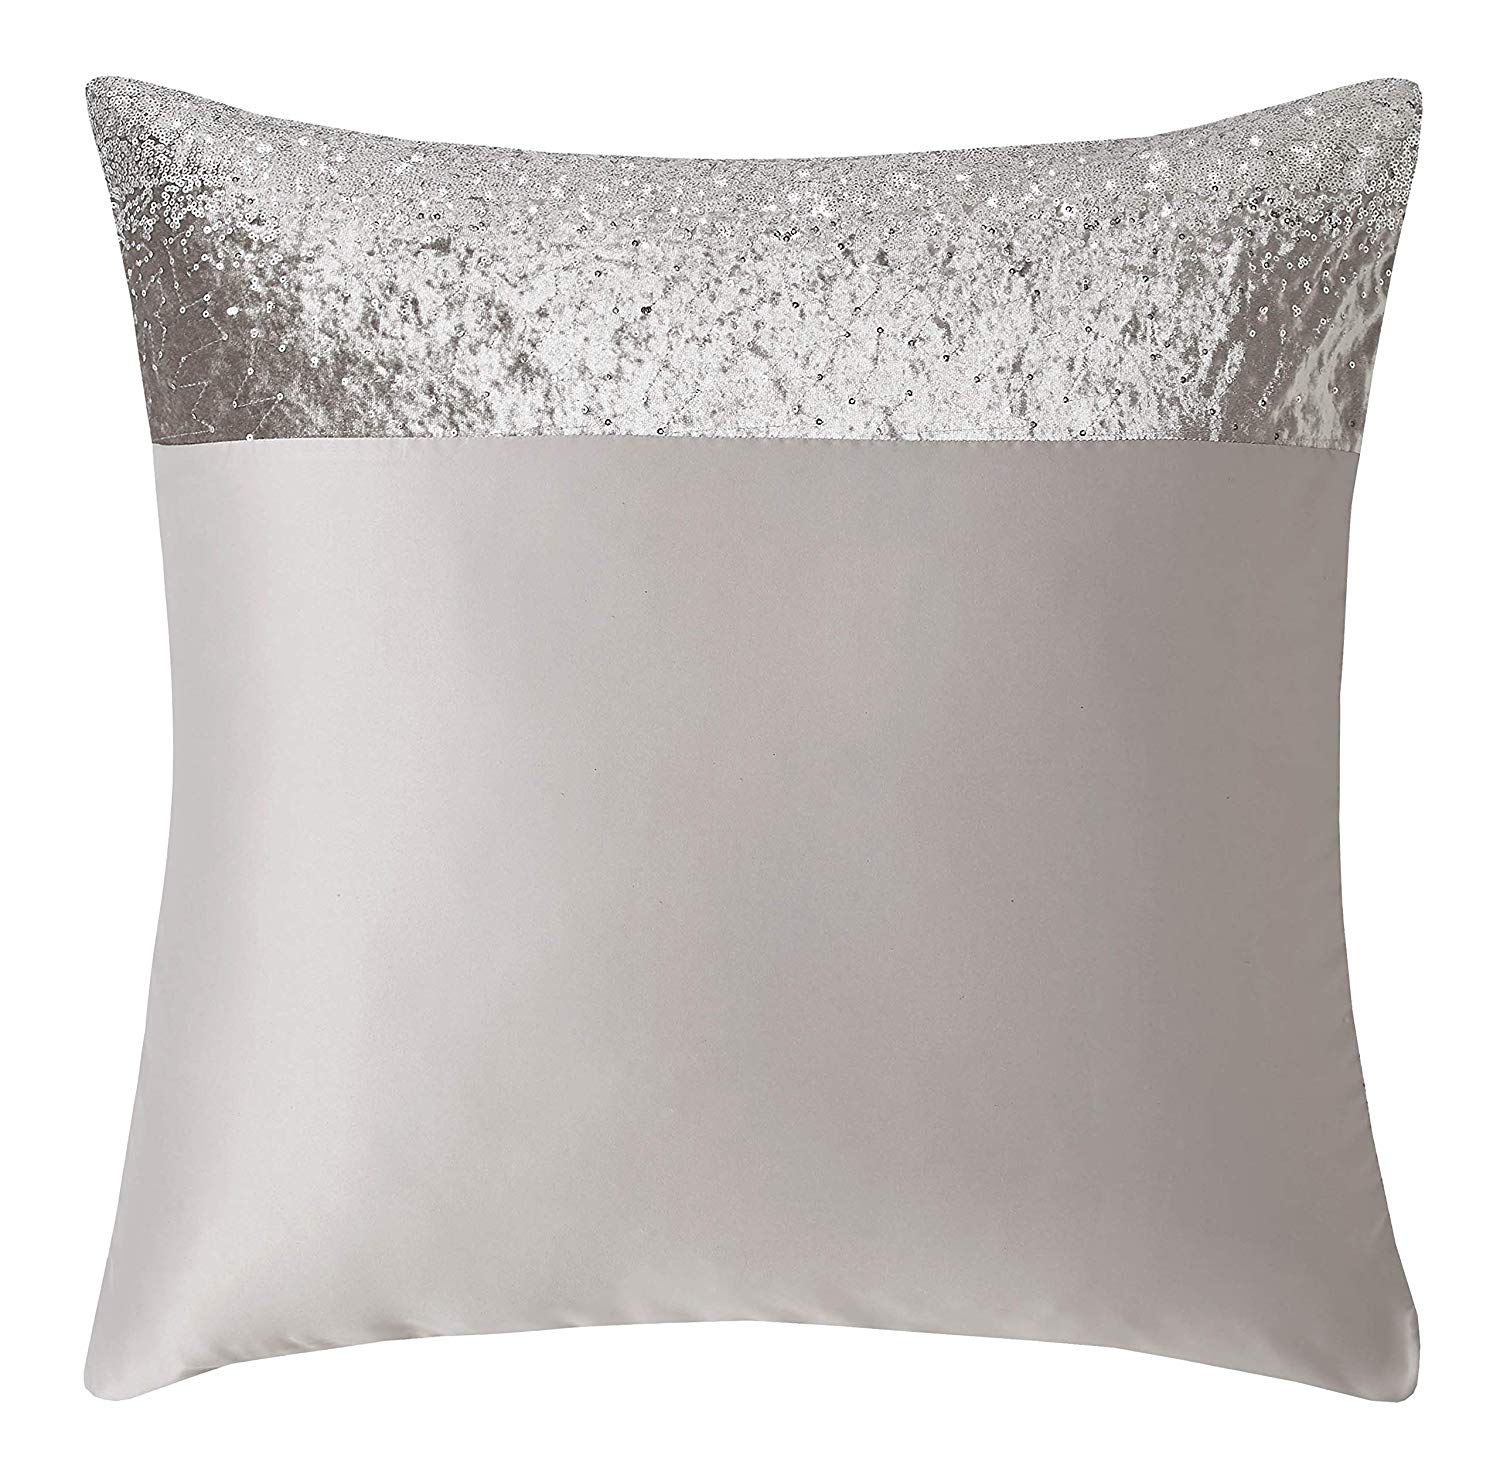 Kylie Minogue Skyla Bedding Range Silver New For Autumn 2019